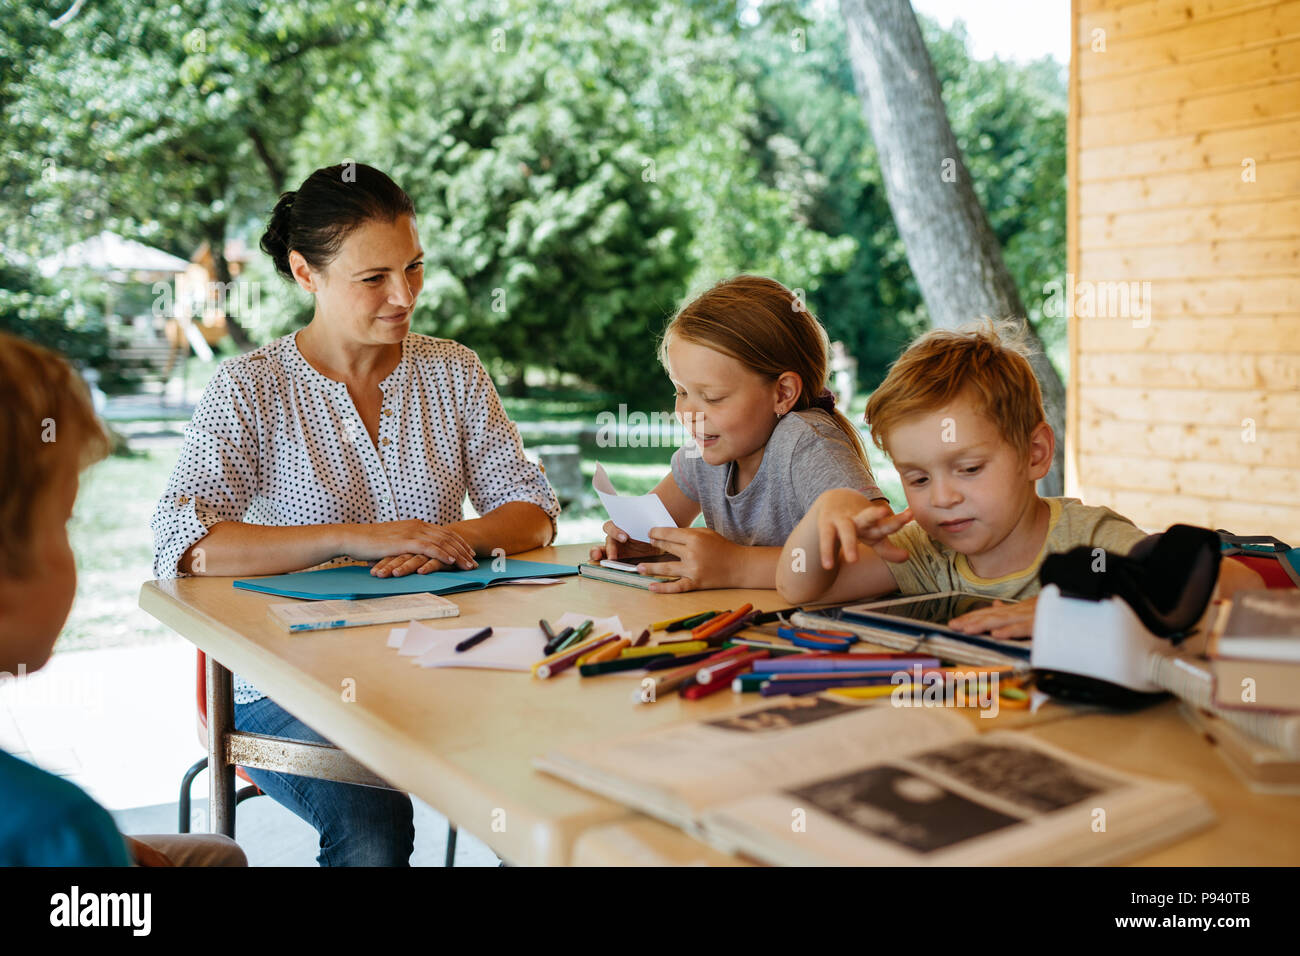 Young school girl reading aloud to her mother and class mates. Homeschooling - children learning with a teacher outside in a park. - Stock Image